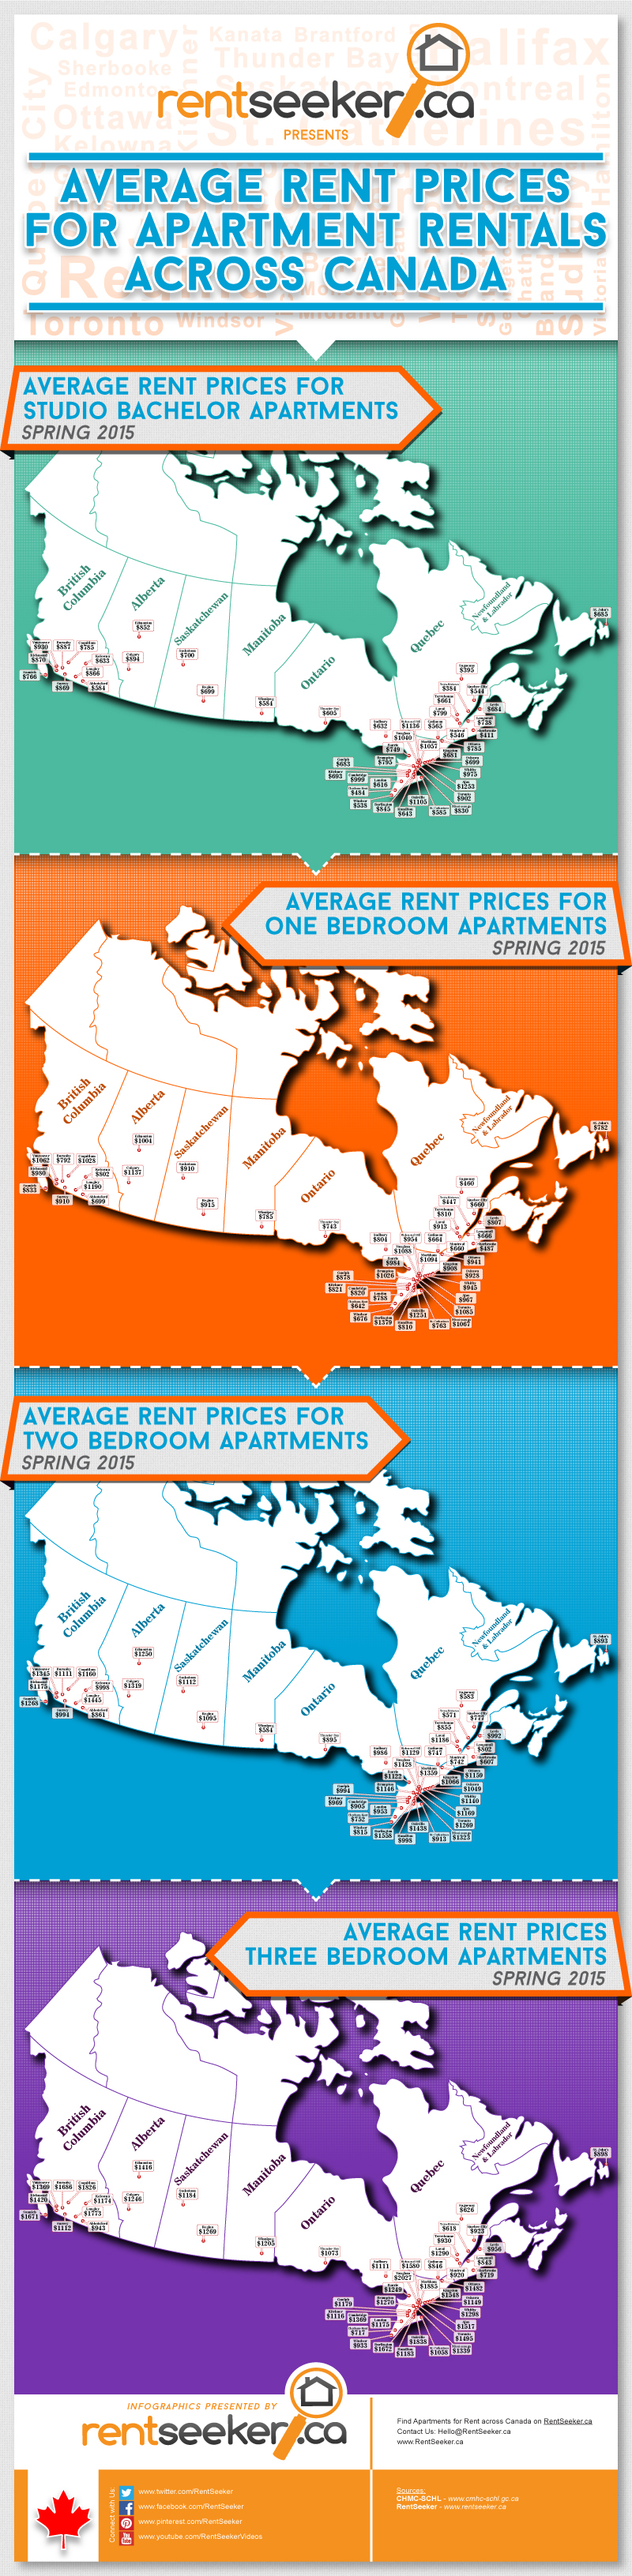 apartment rental rates (Rentseeker.ca)